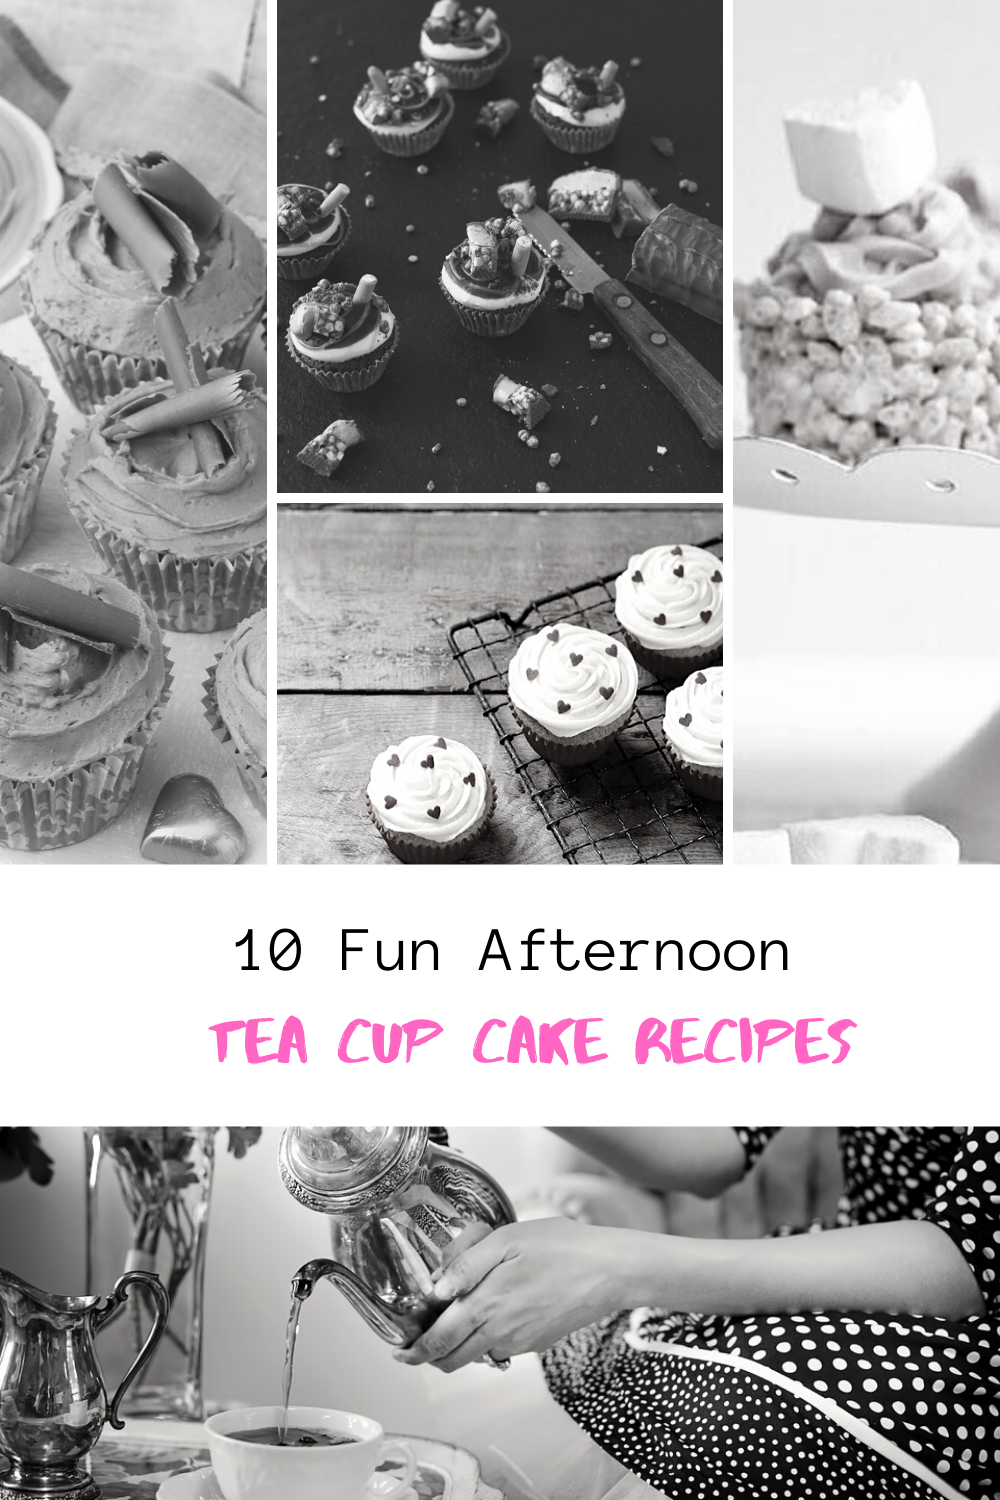 10 Fun Afternoon Tea Cup Cake Recipes To Try Out